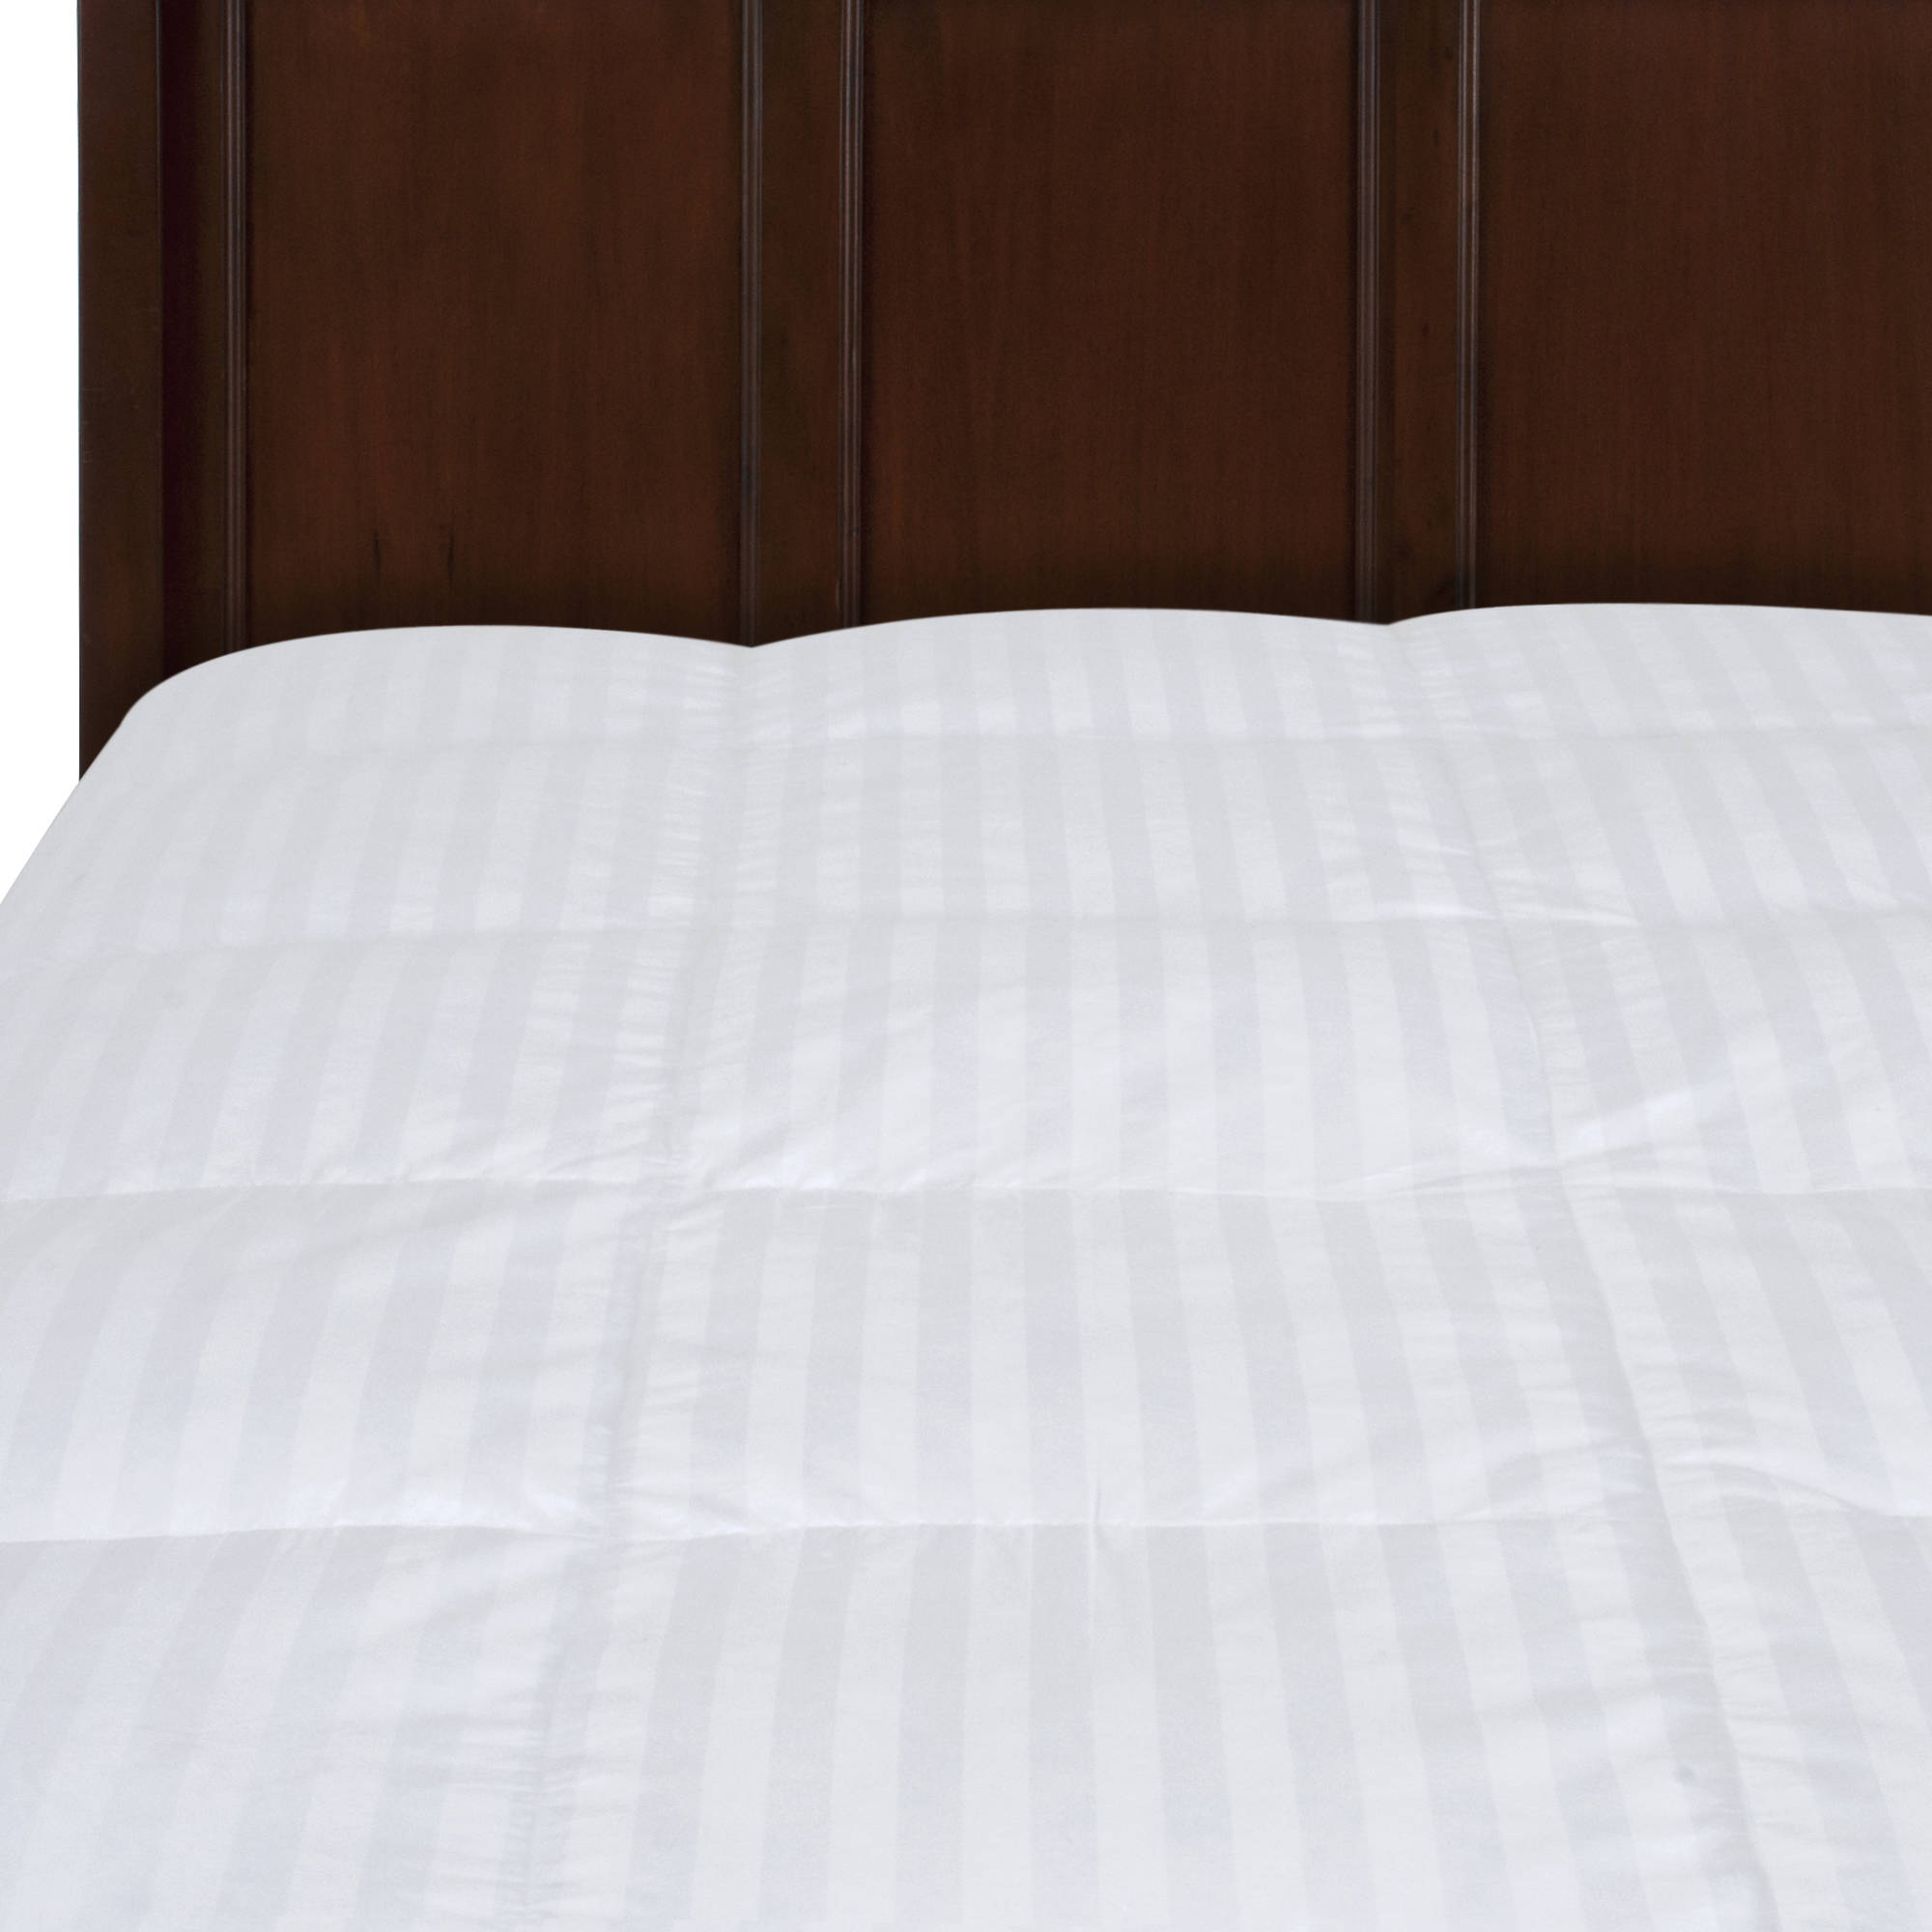 Beautyrest 300-Thread Count Arctic Fresh Down Comforter:</